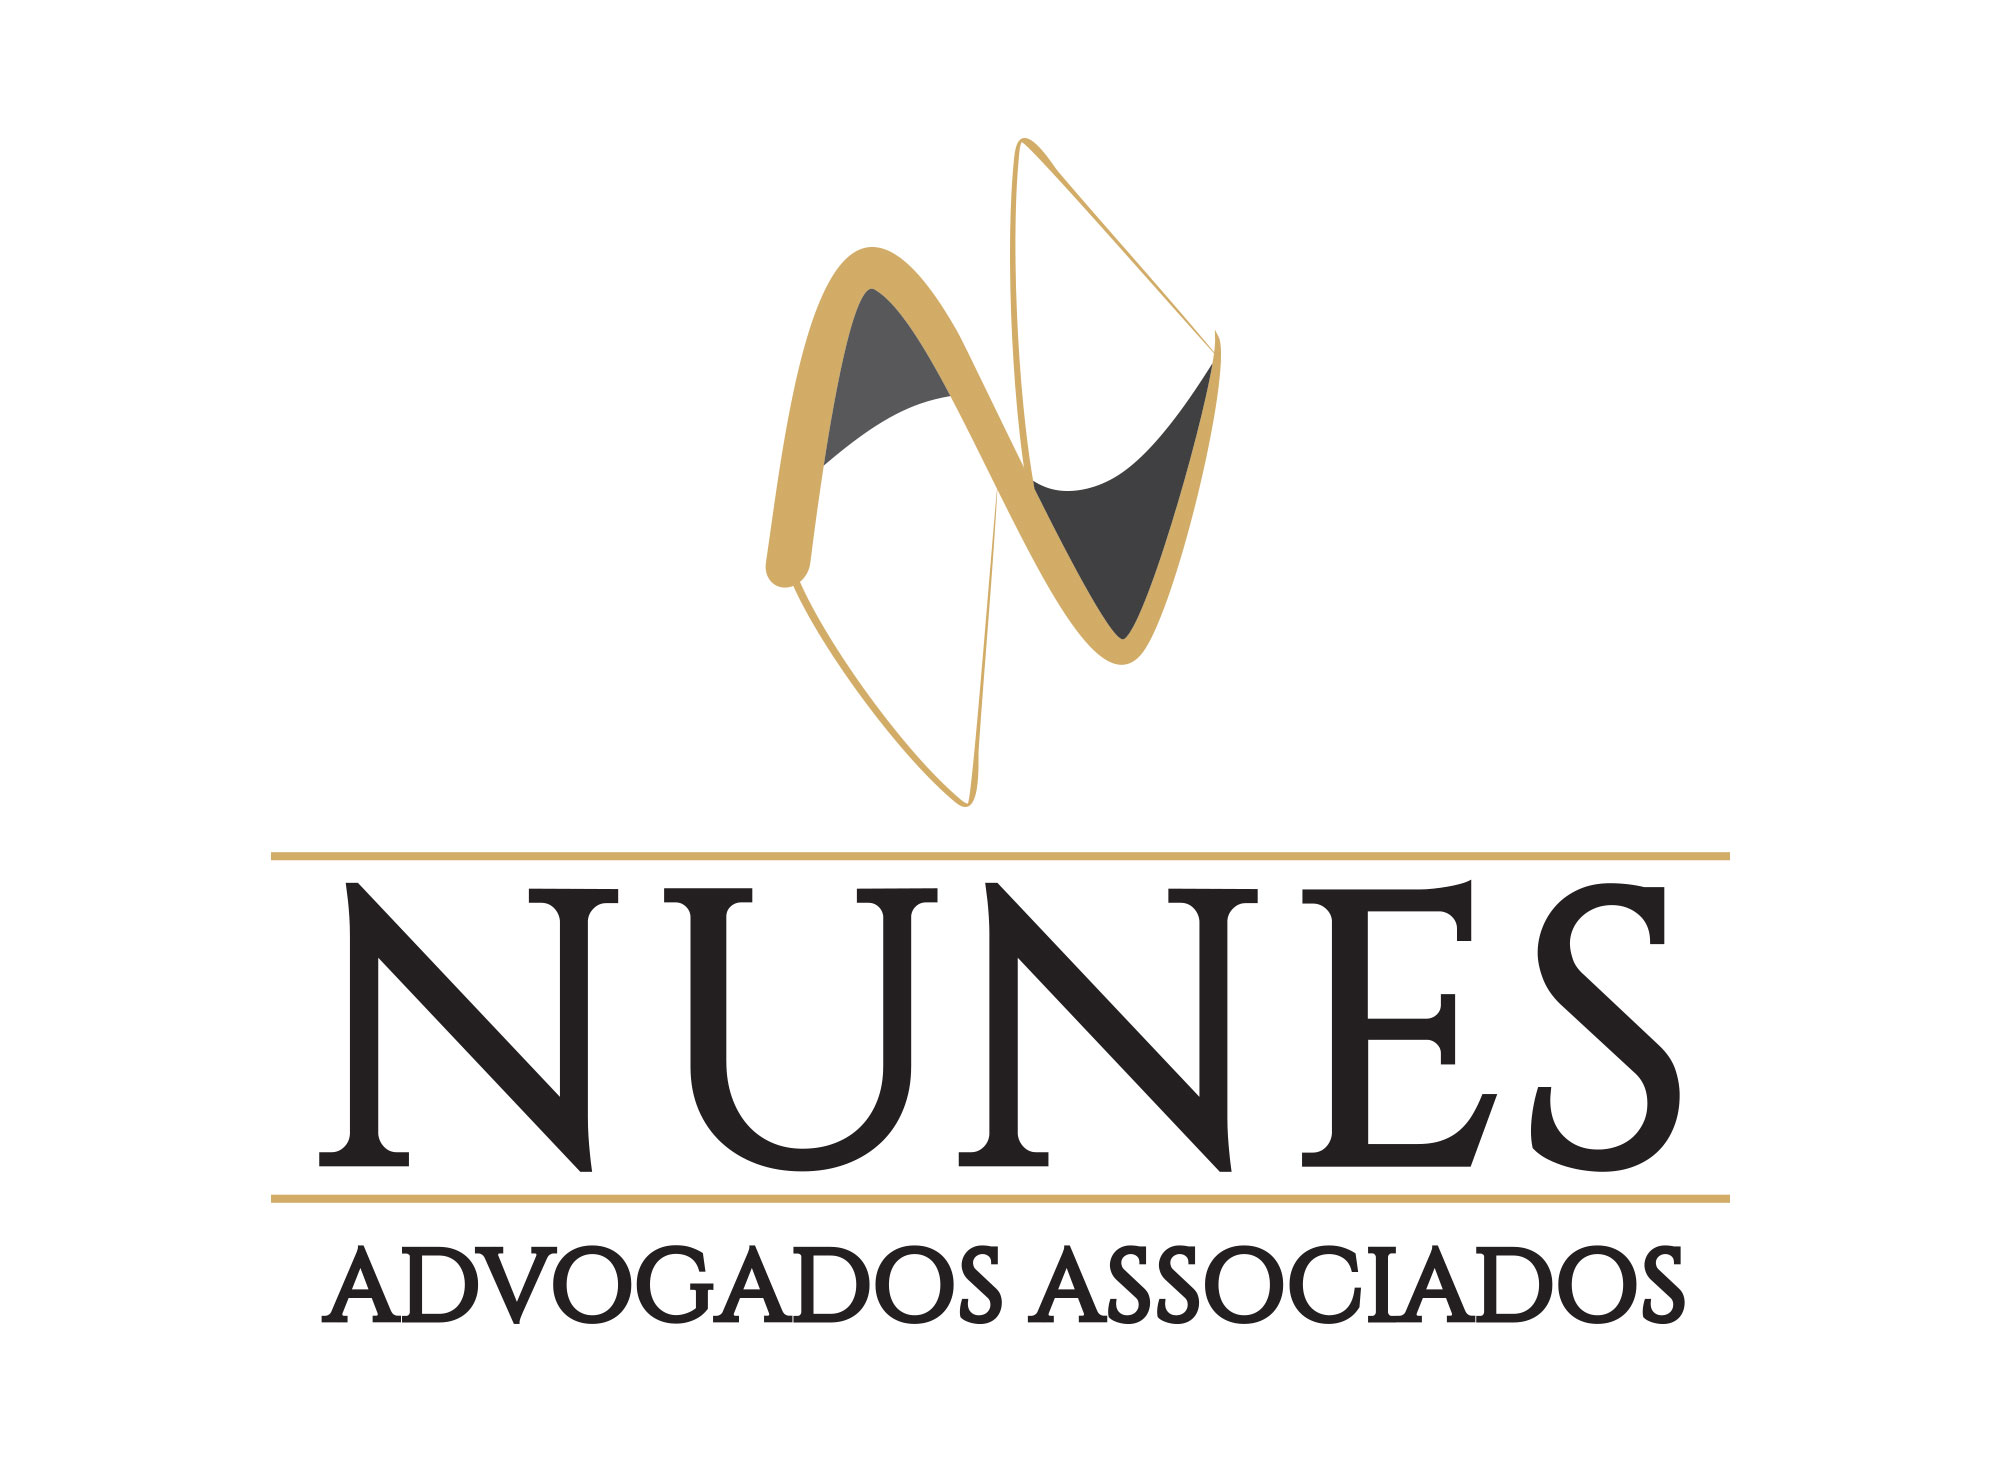 nunes-advogados-associados-cliente-agencia-diretriz-digital-marketing-fortaleza